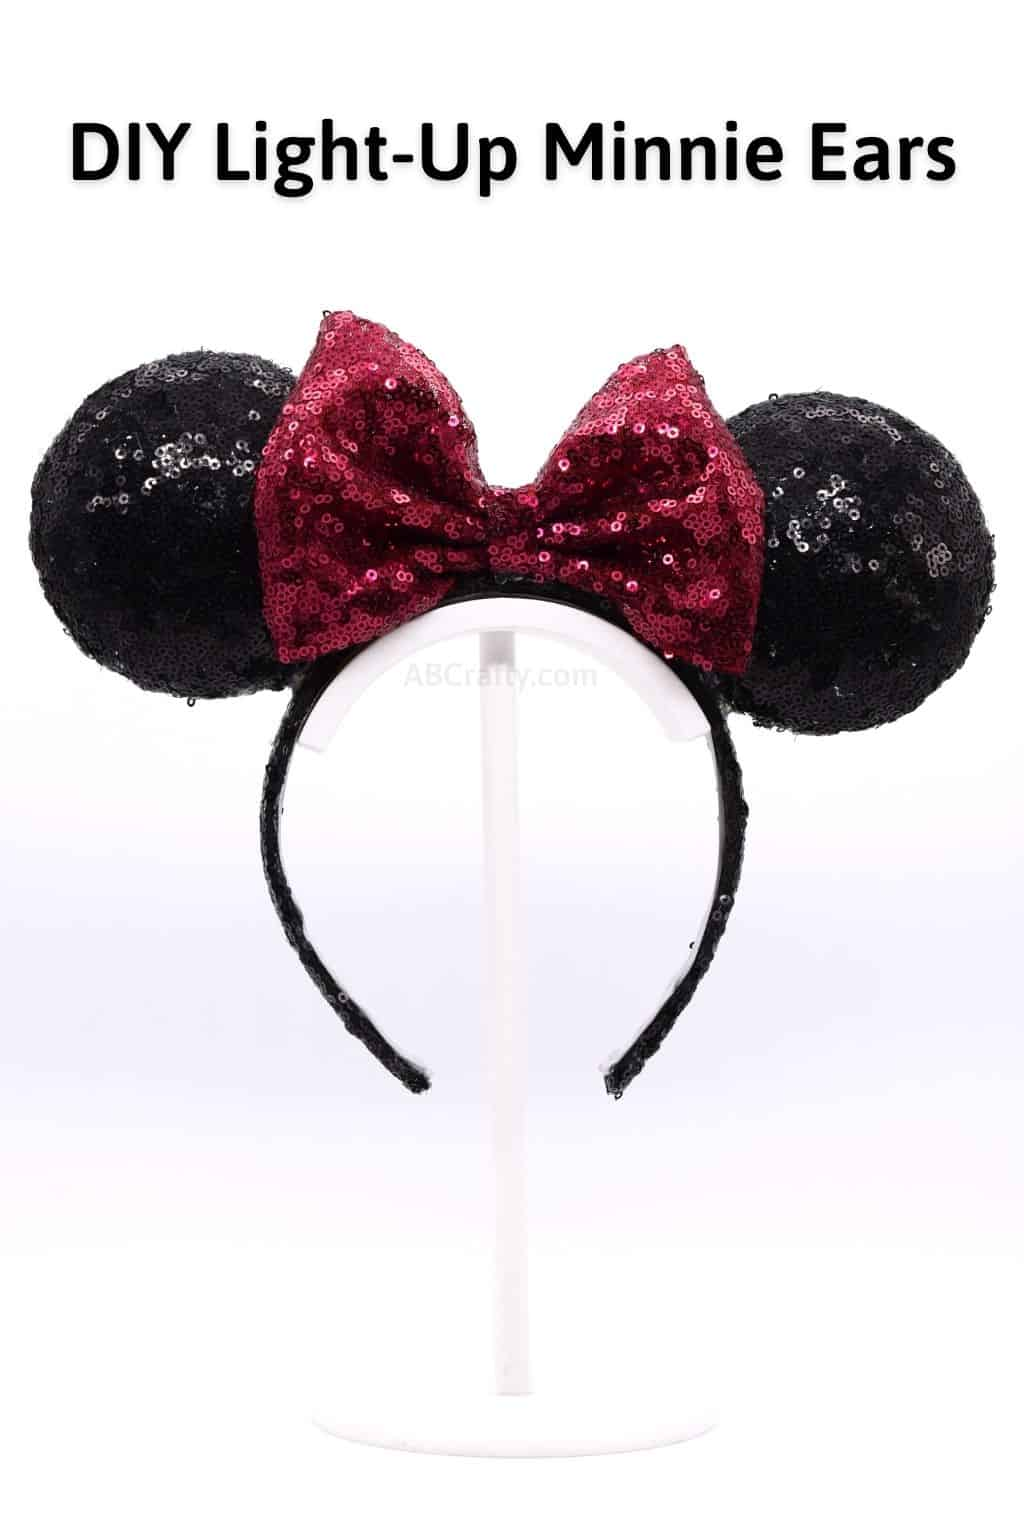 Titled DIY Classic Light Up Minnie Ears. It's a black sequined headband with a red sequined bow, creating the classic Disney Minnie Mouse ears